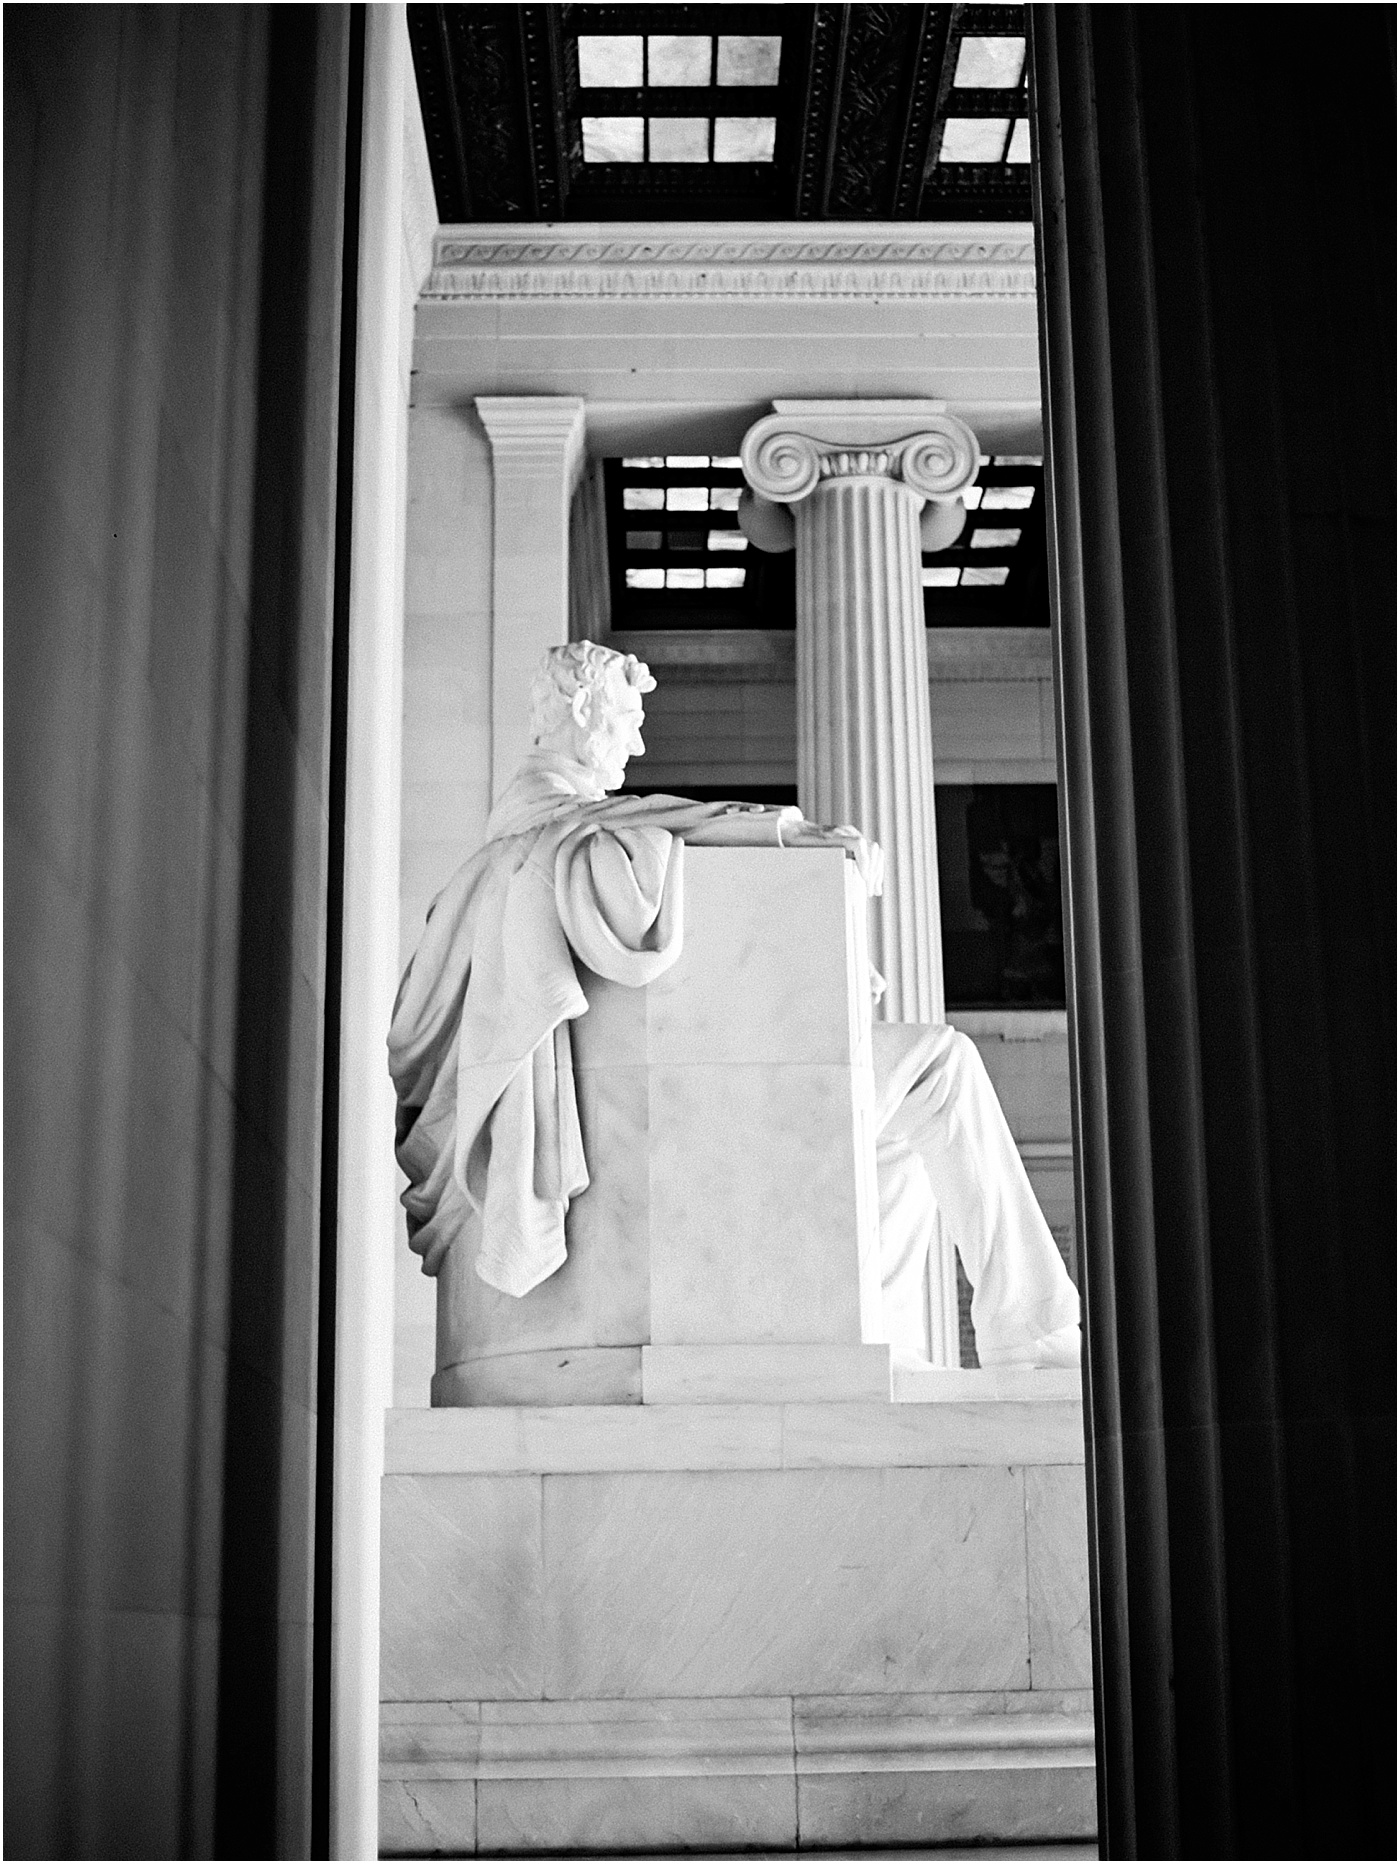 Washington DC by Jordan Brittley (www.jordanbrittley.com)